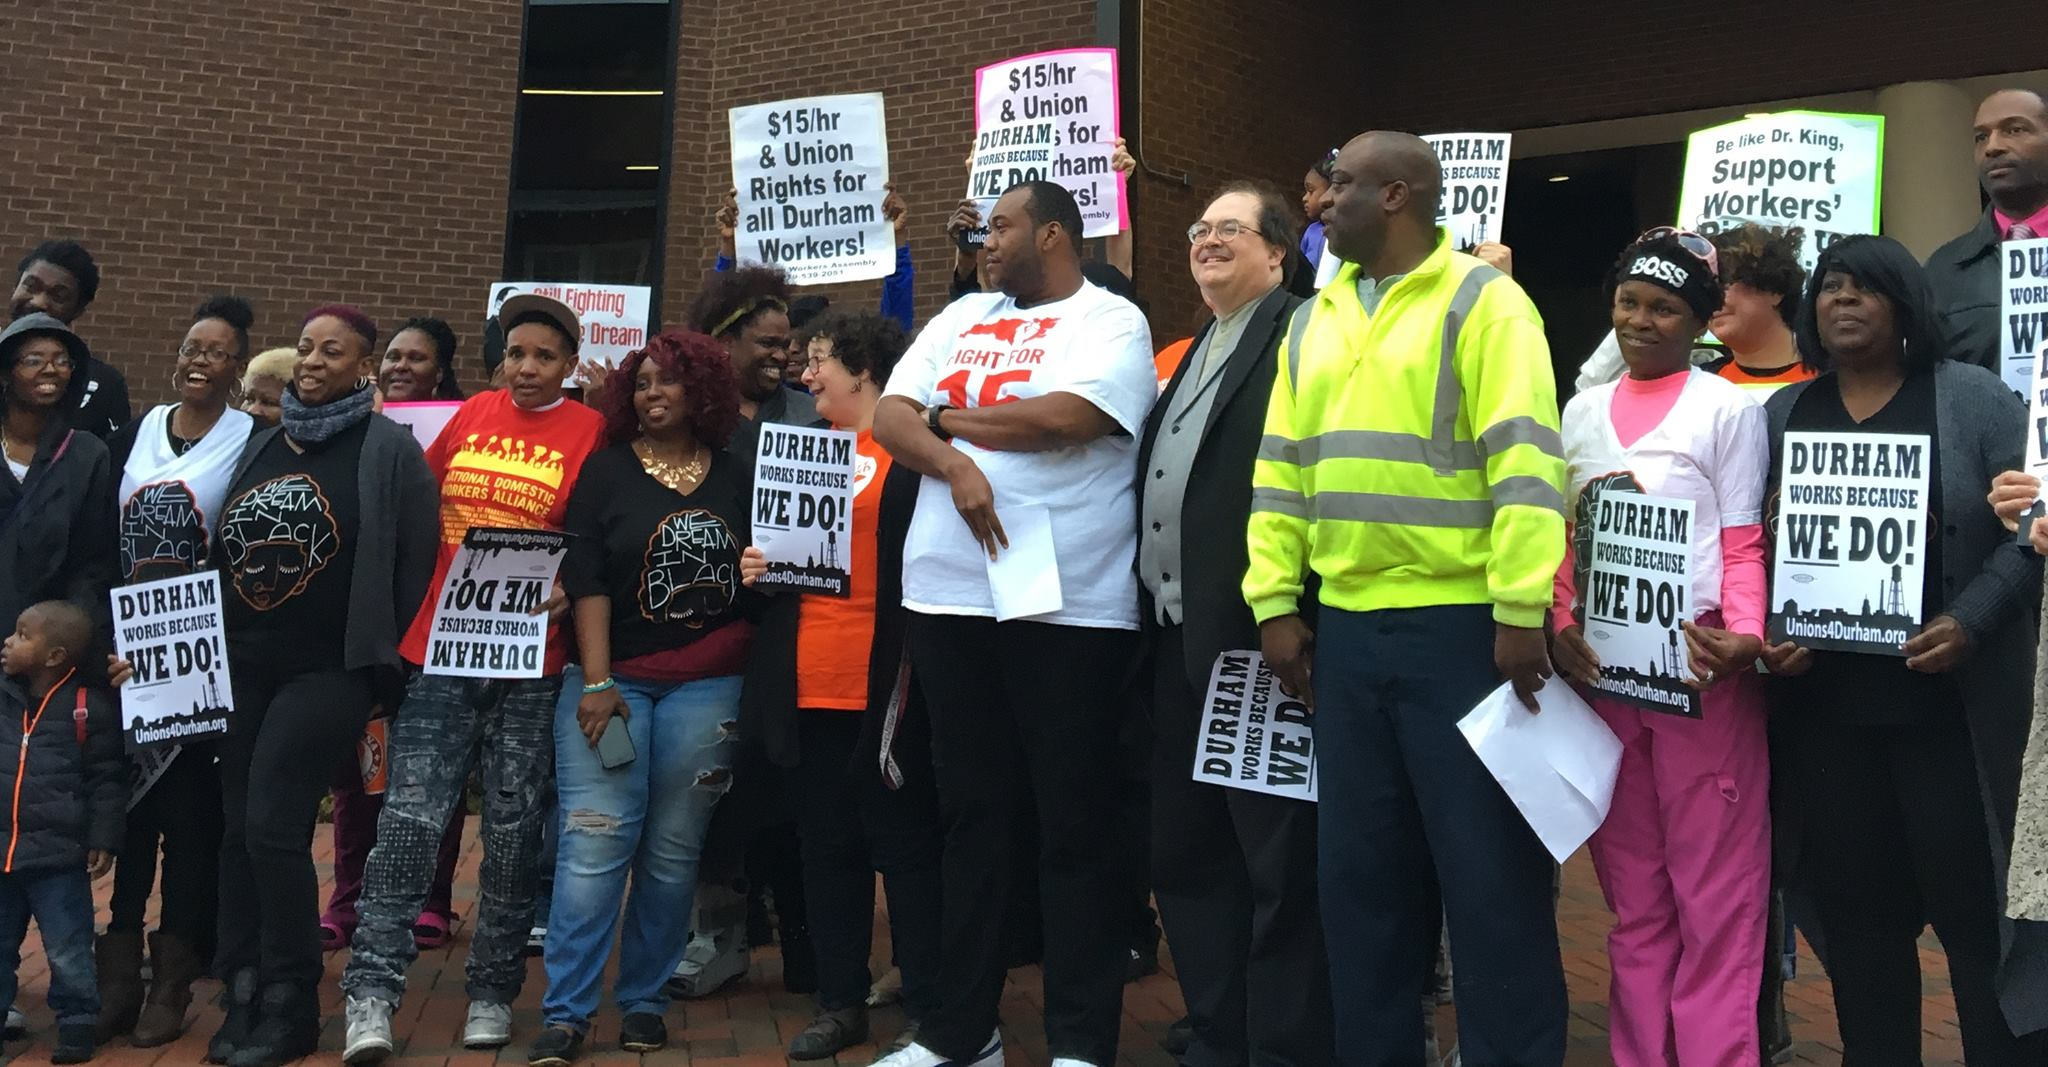 On eve of Martin Luther King's Day, workers from across industries united to demand Workers Commission